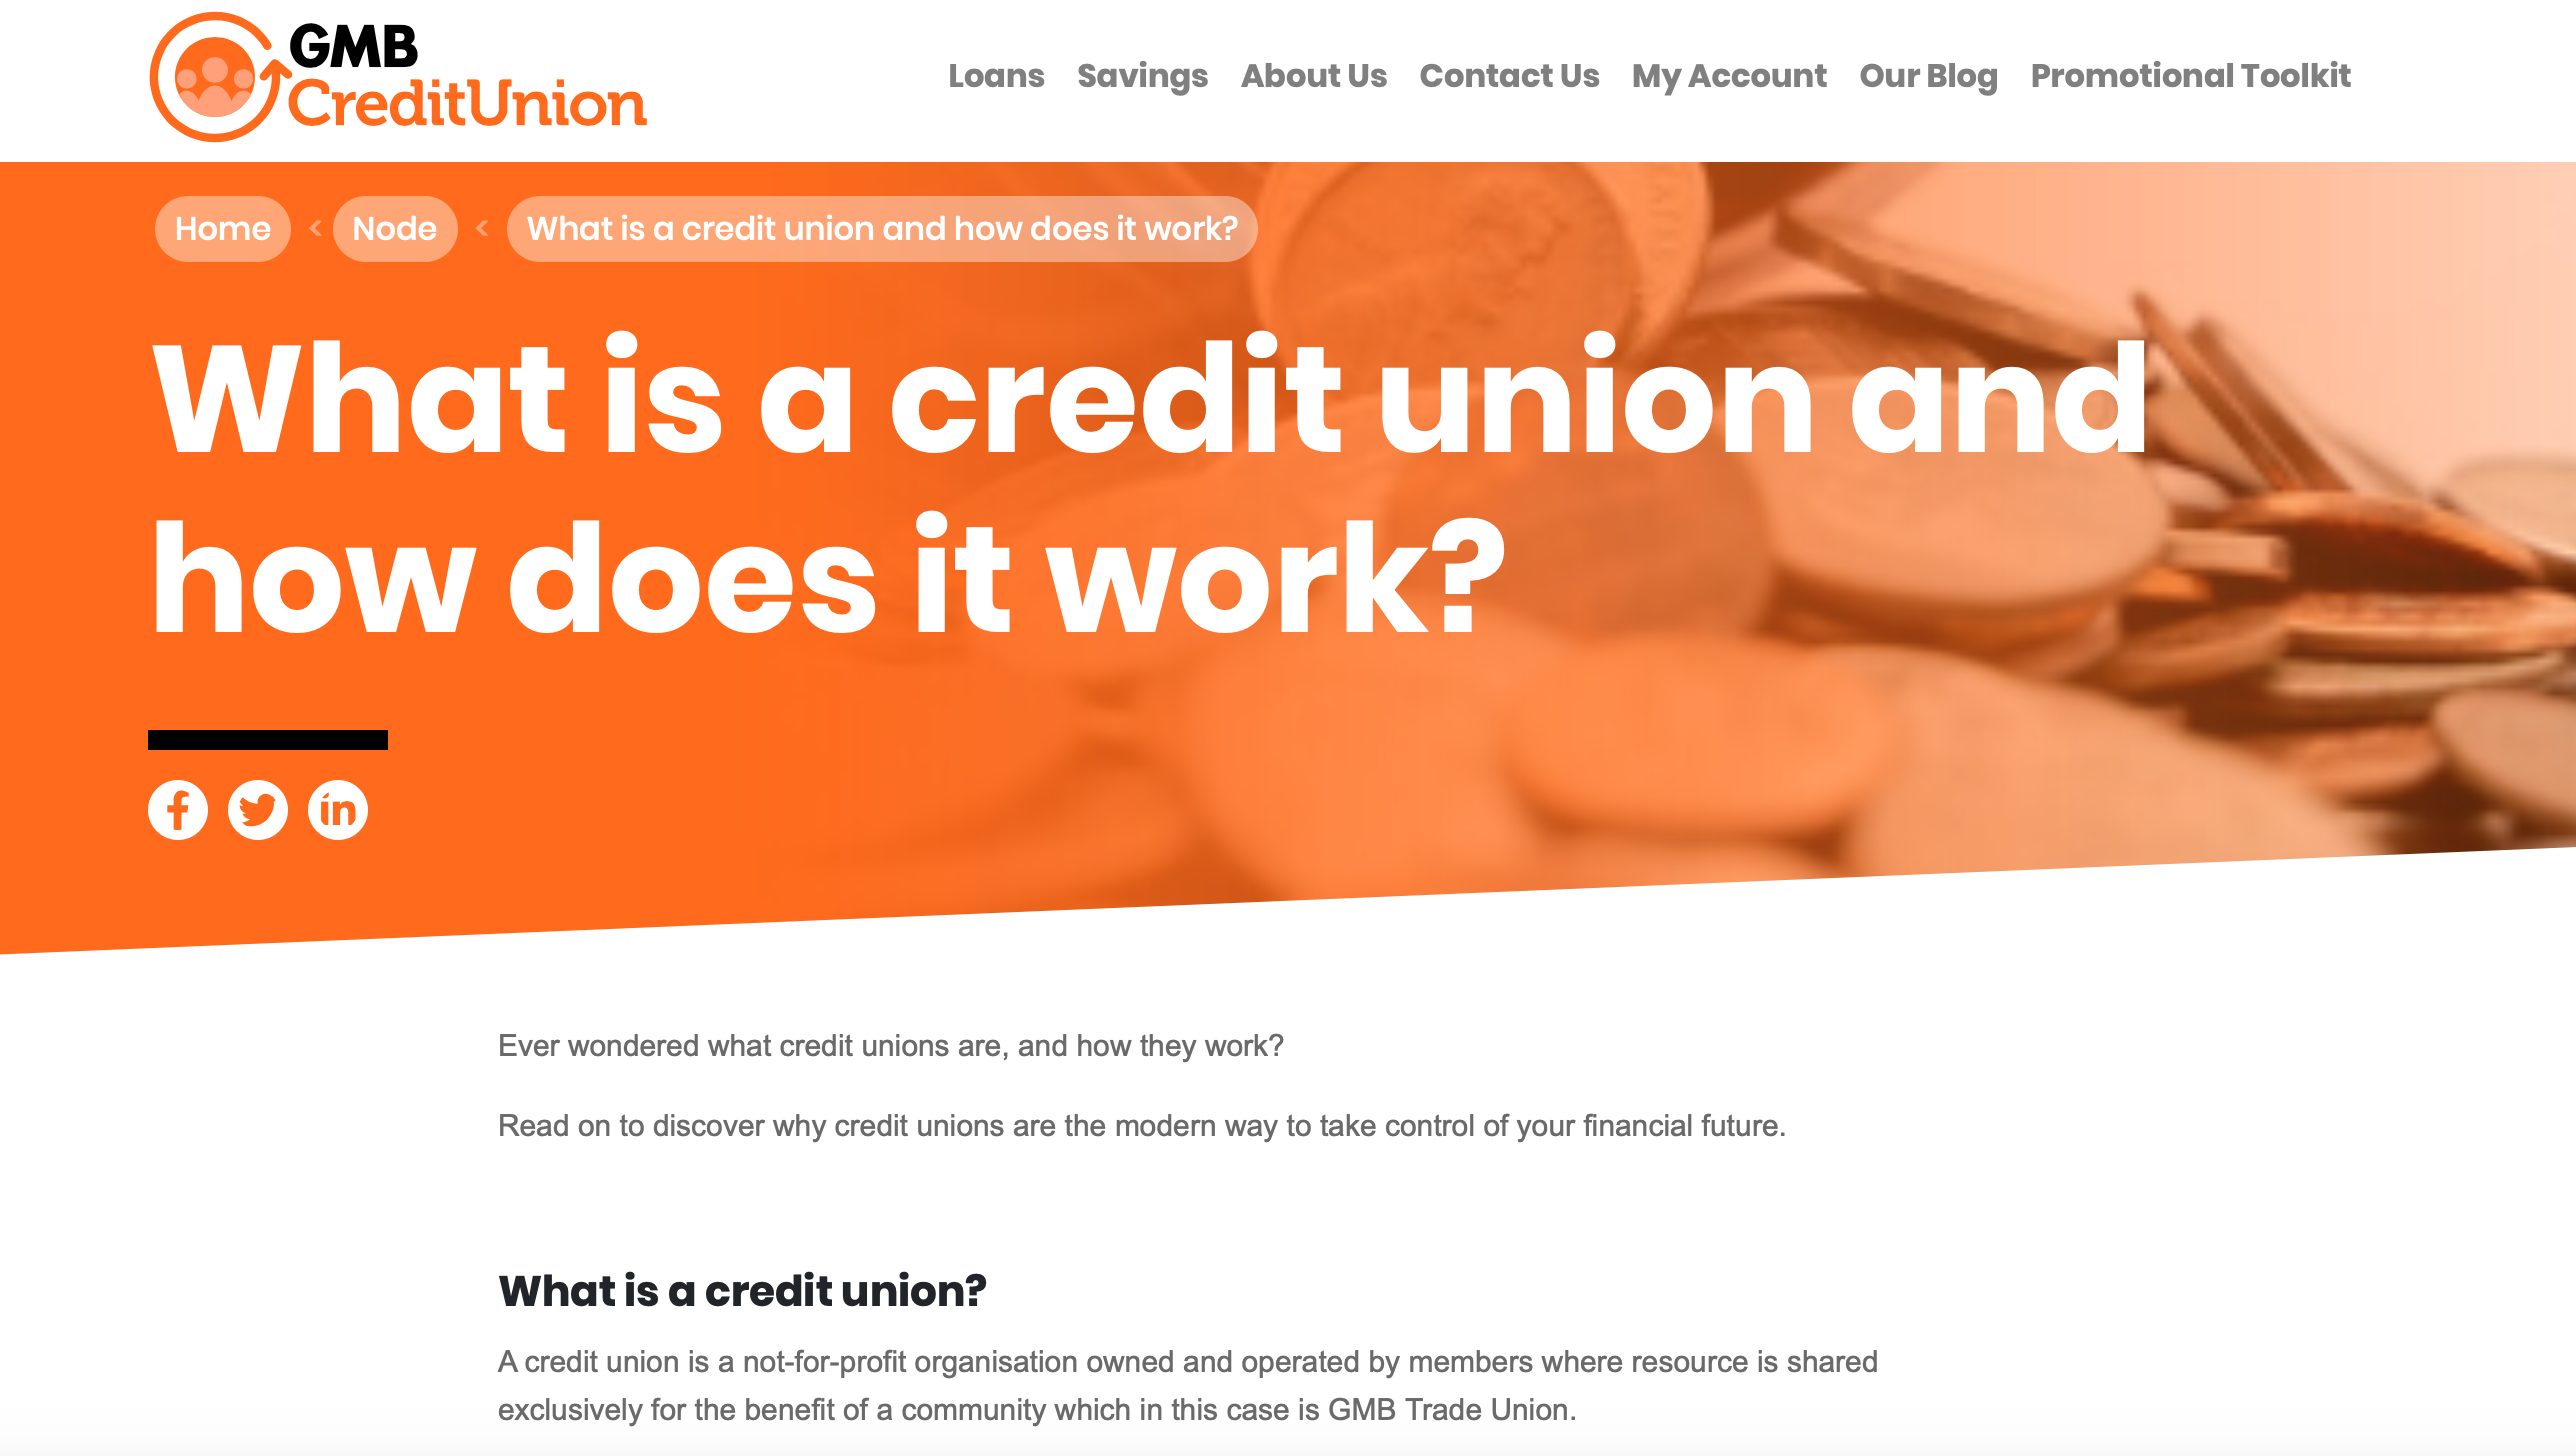 gmb credit union blog writing